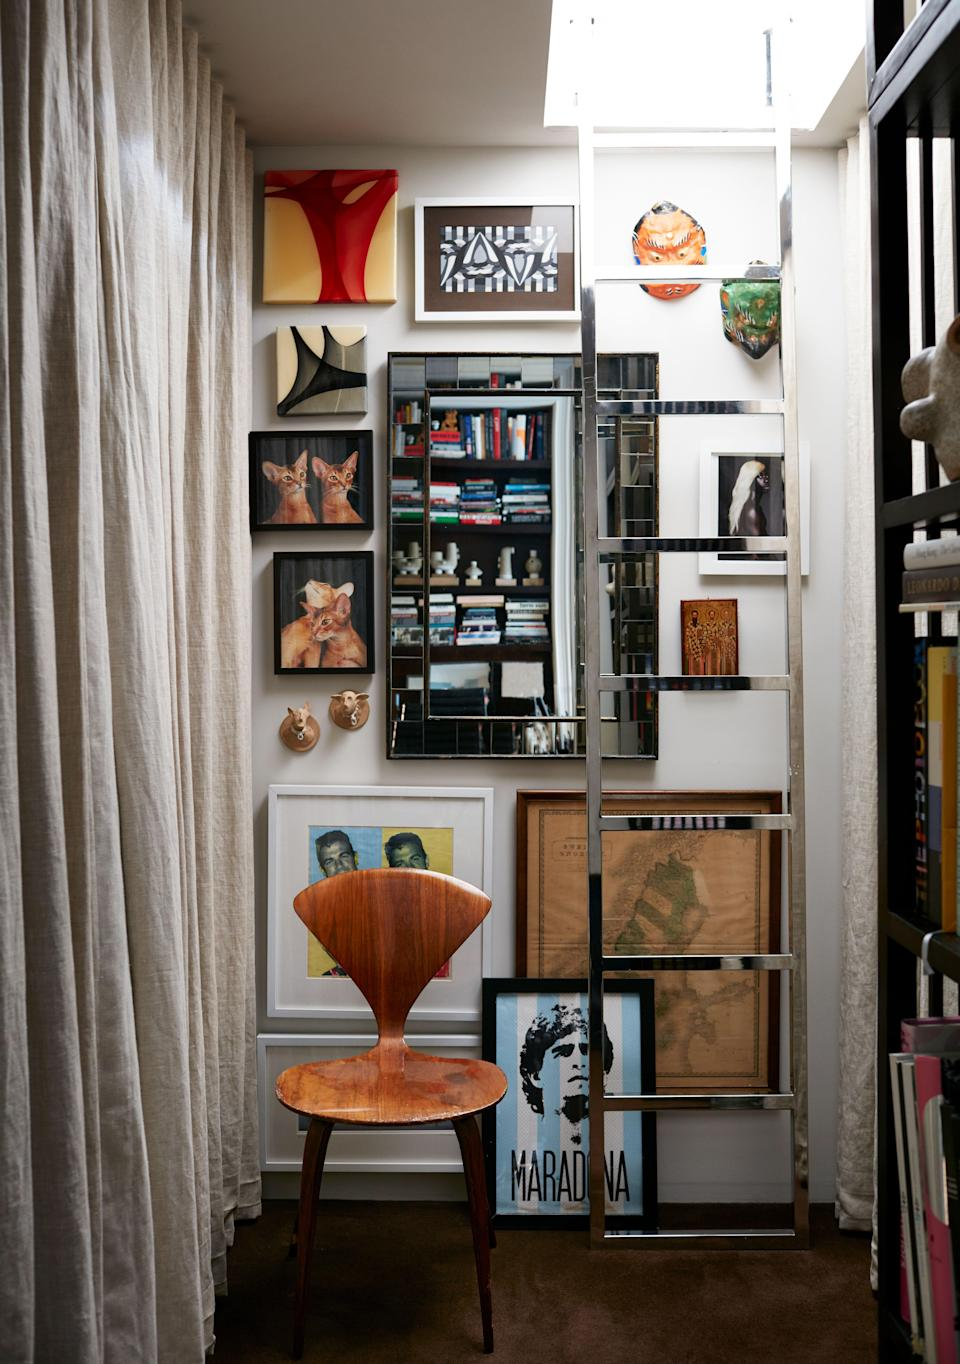 A large walk-in closet features storage and a washer-dryer plus a custom-designed cast-metal ladder that leads up to the small guest bedroom upstairs. The poster of Argentinean soccer icon Maradona was salvaged from the street in New York.